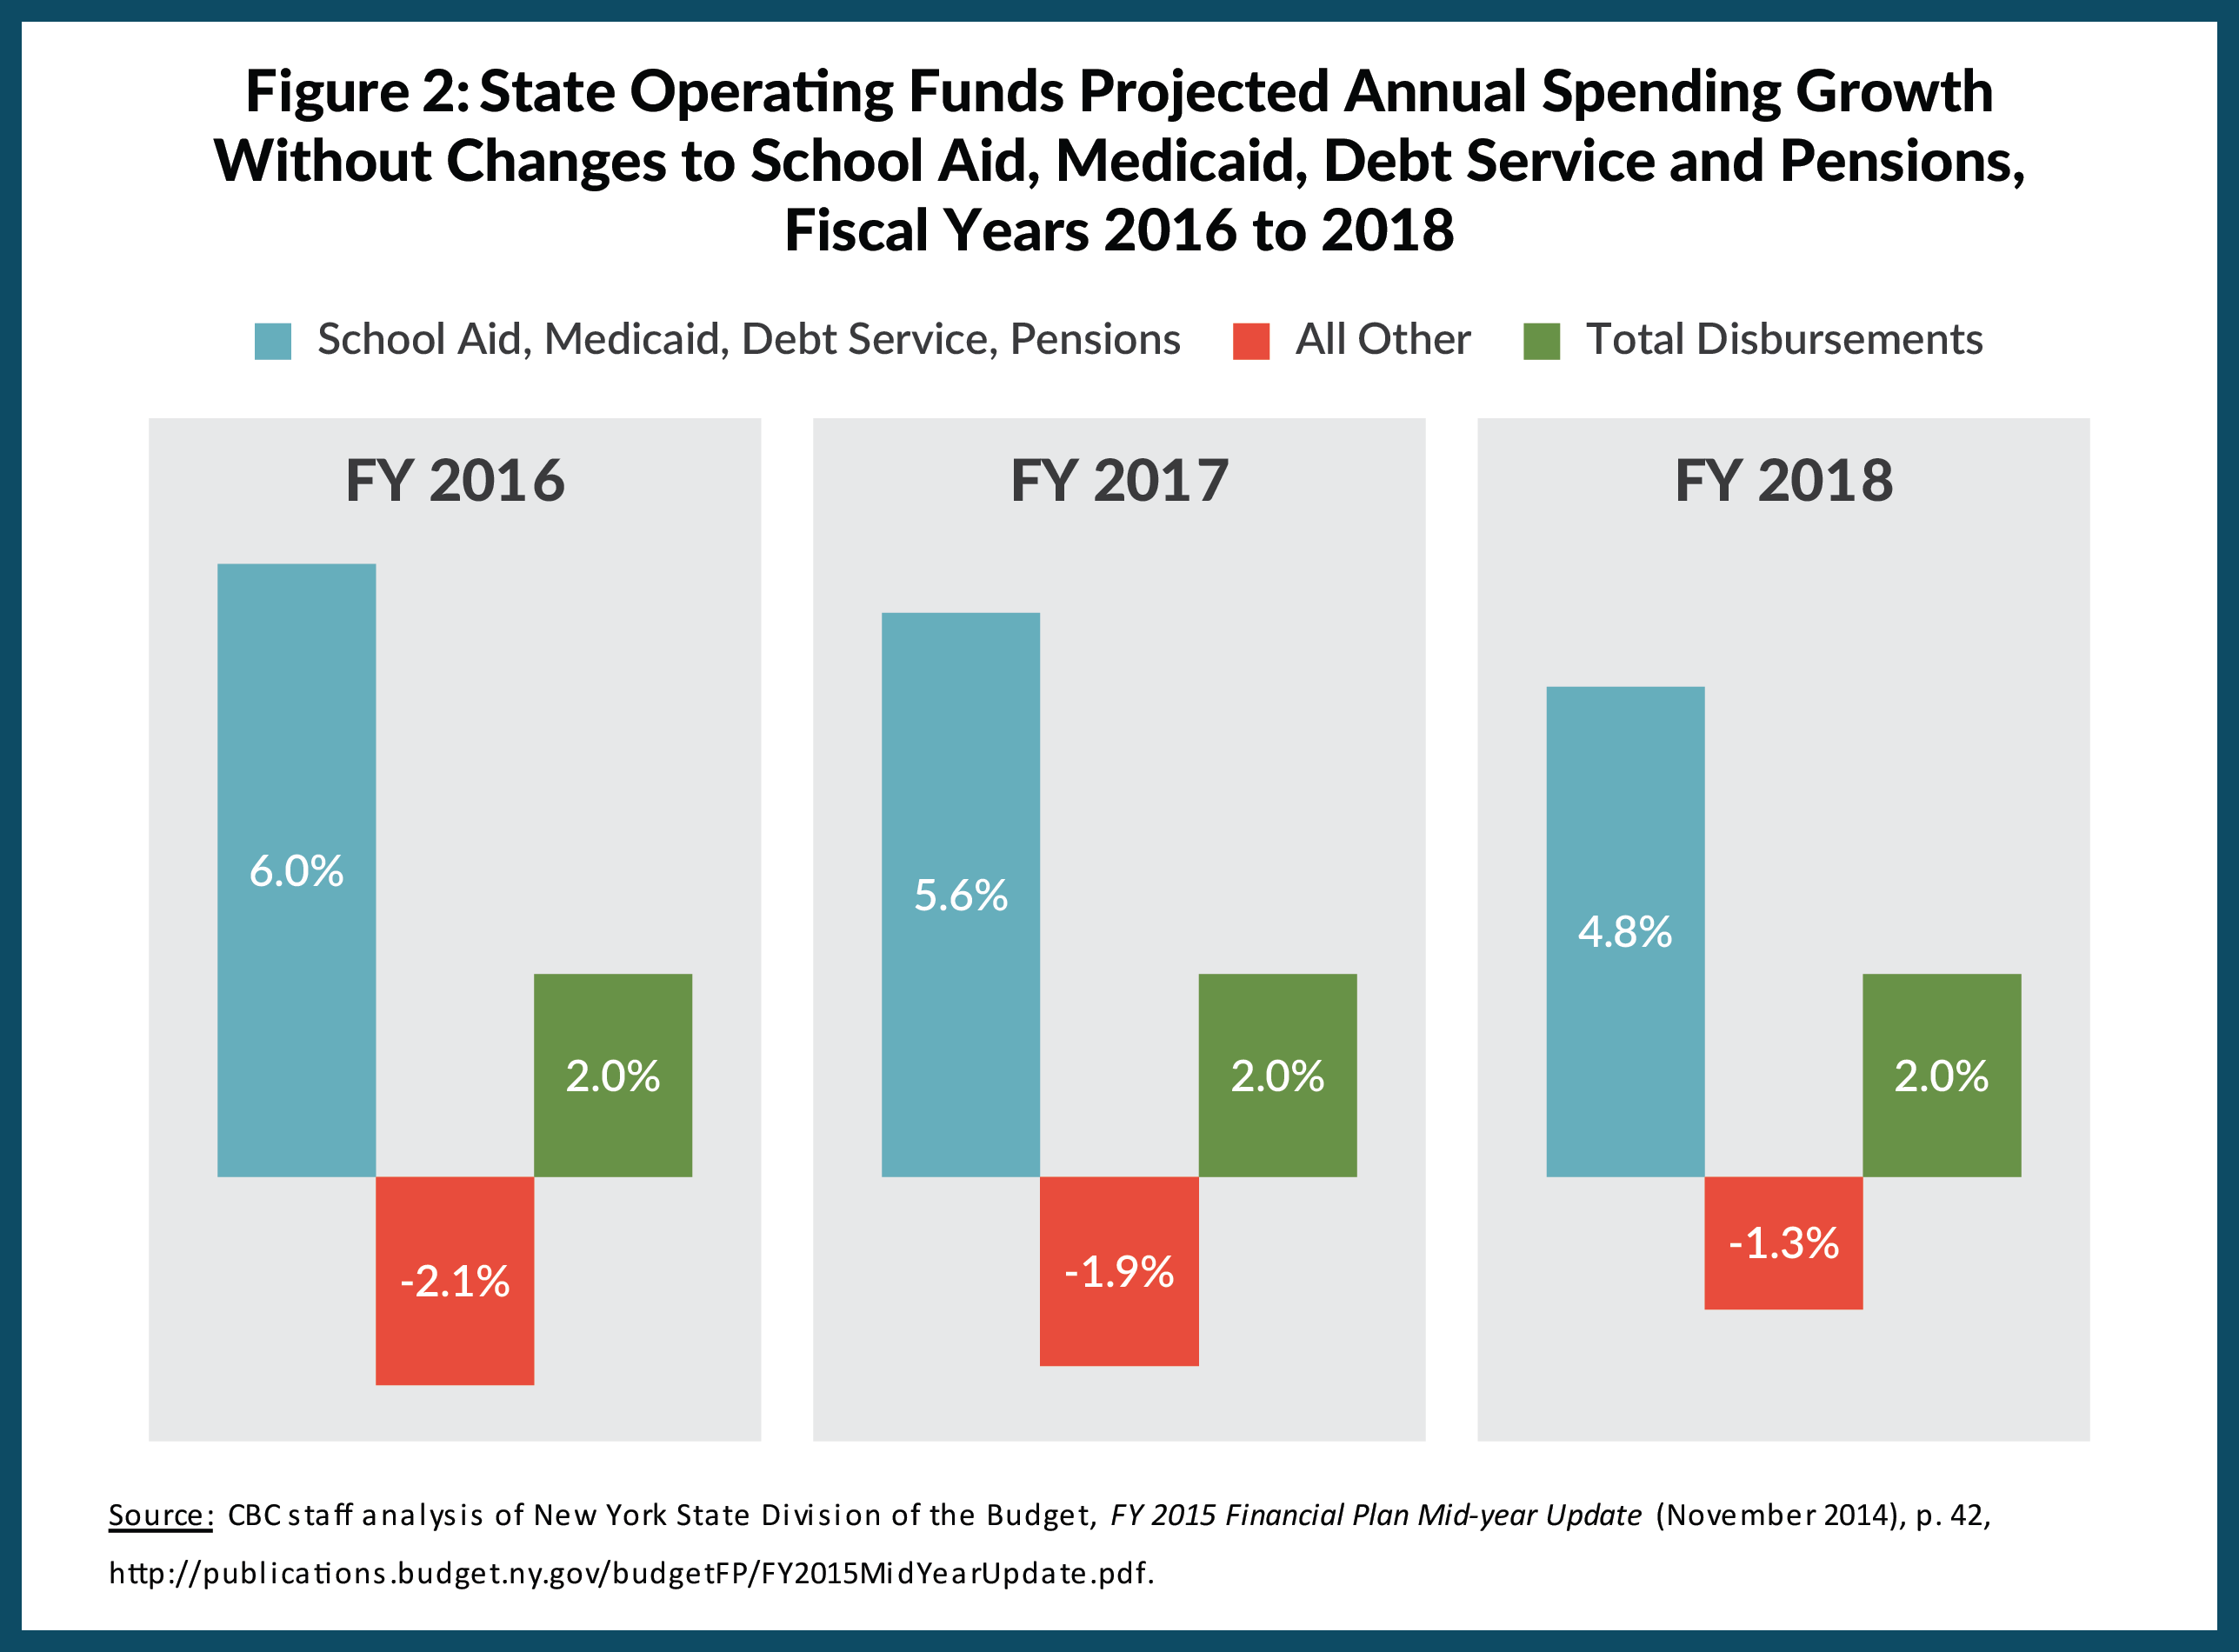 Figure 2: State Operating Funds Projected Annual Spending Growth Without Changes to School Aid, Medicaid, Debt Service and Pensions, Fiscal Years 2016 to 2018